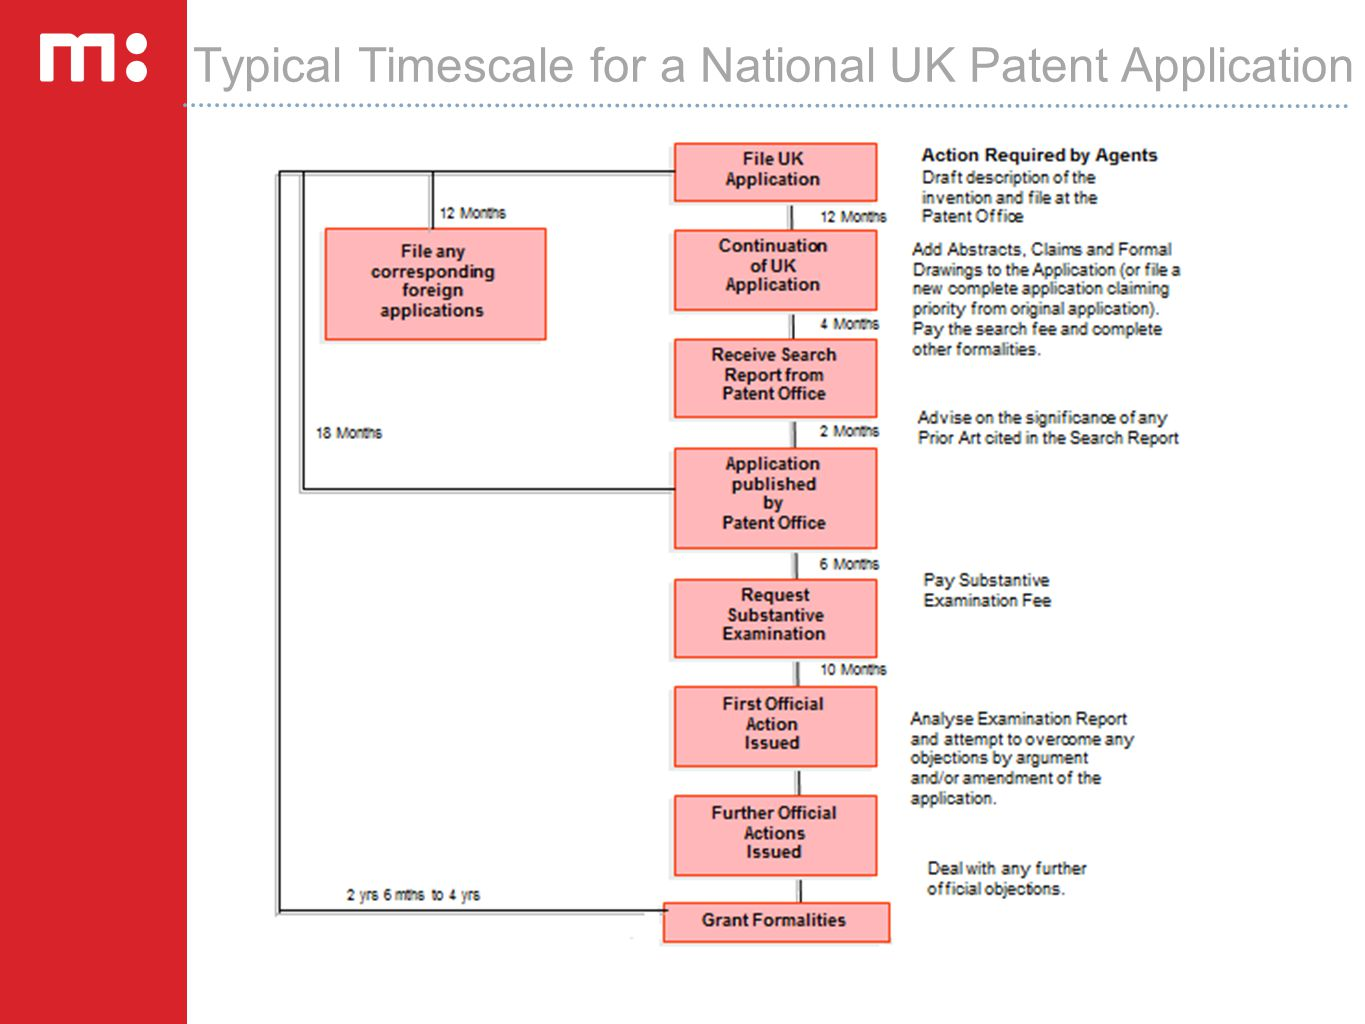 Typical Timescale for a National UK Patent Application